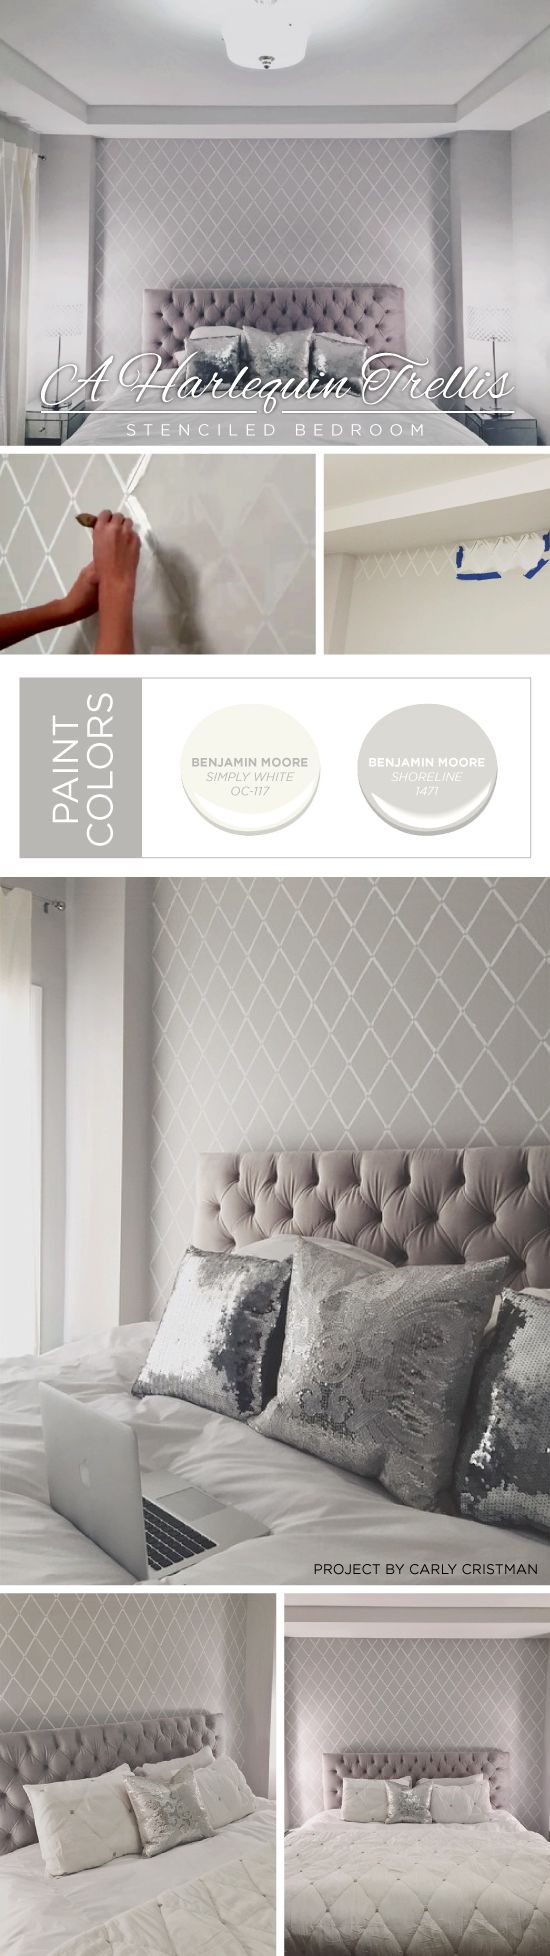 Cutting Edge Stencils shares a  DIY stenciled bedroom accent wall using the Harlequin Trellis Allover Stencil. http://www.cuttingedgestencils.com/trellis-stencil-harlequin.html